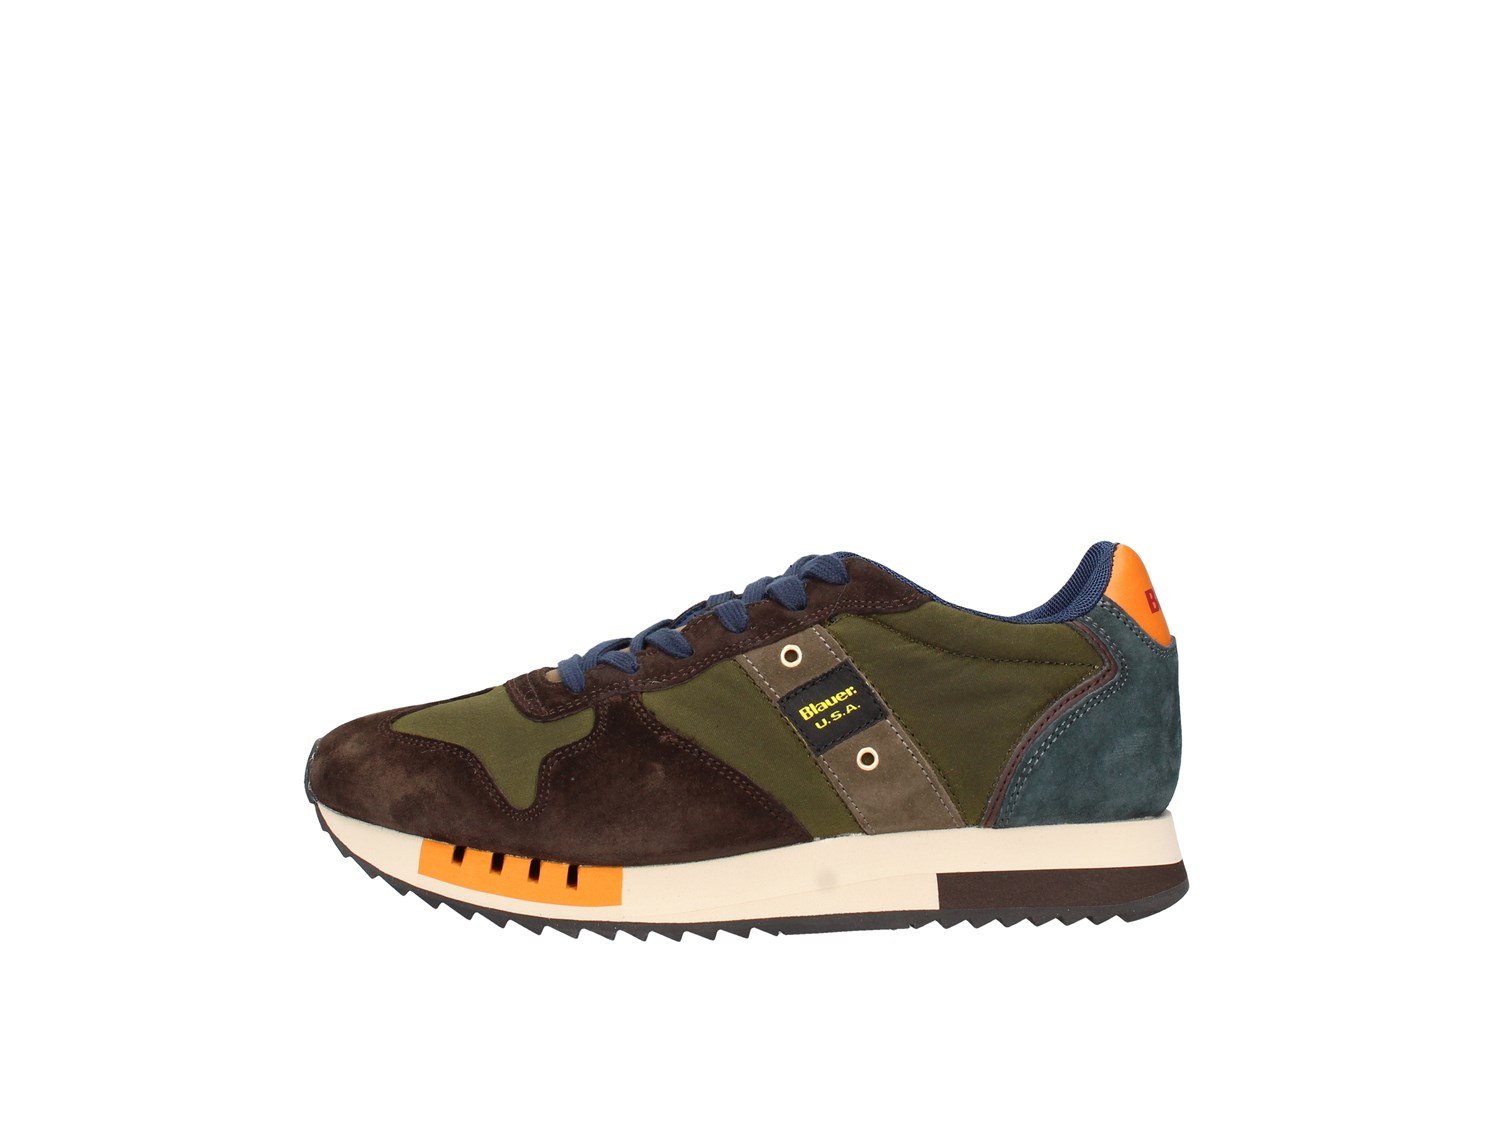 Blauer. U.s.a. F0queens01/wax T.moro / green Shoes Man Sneakers